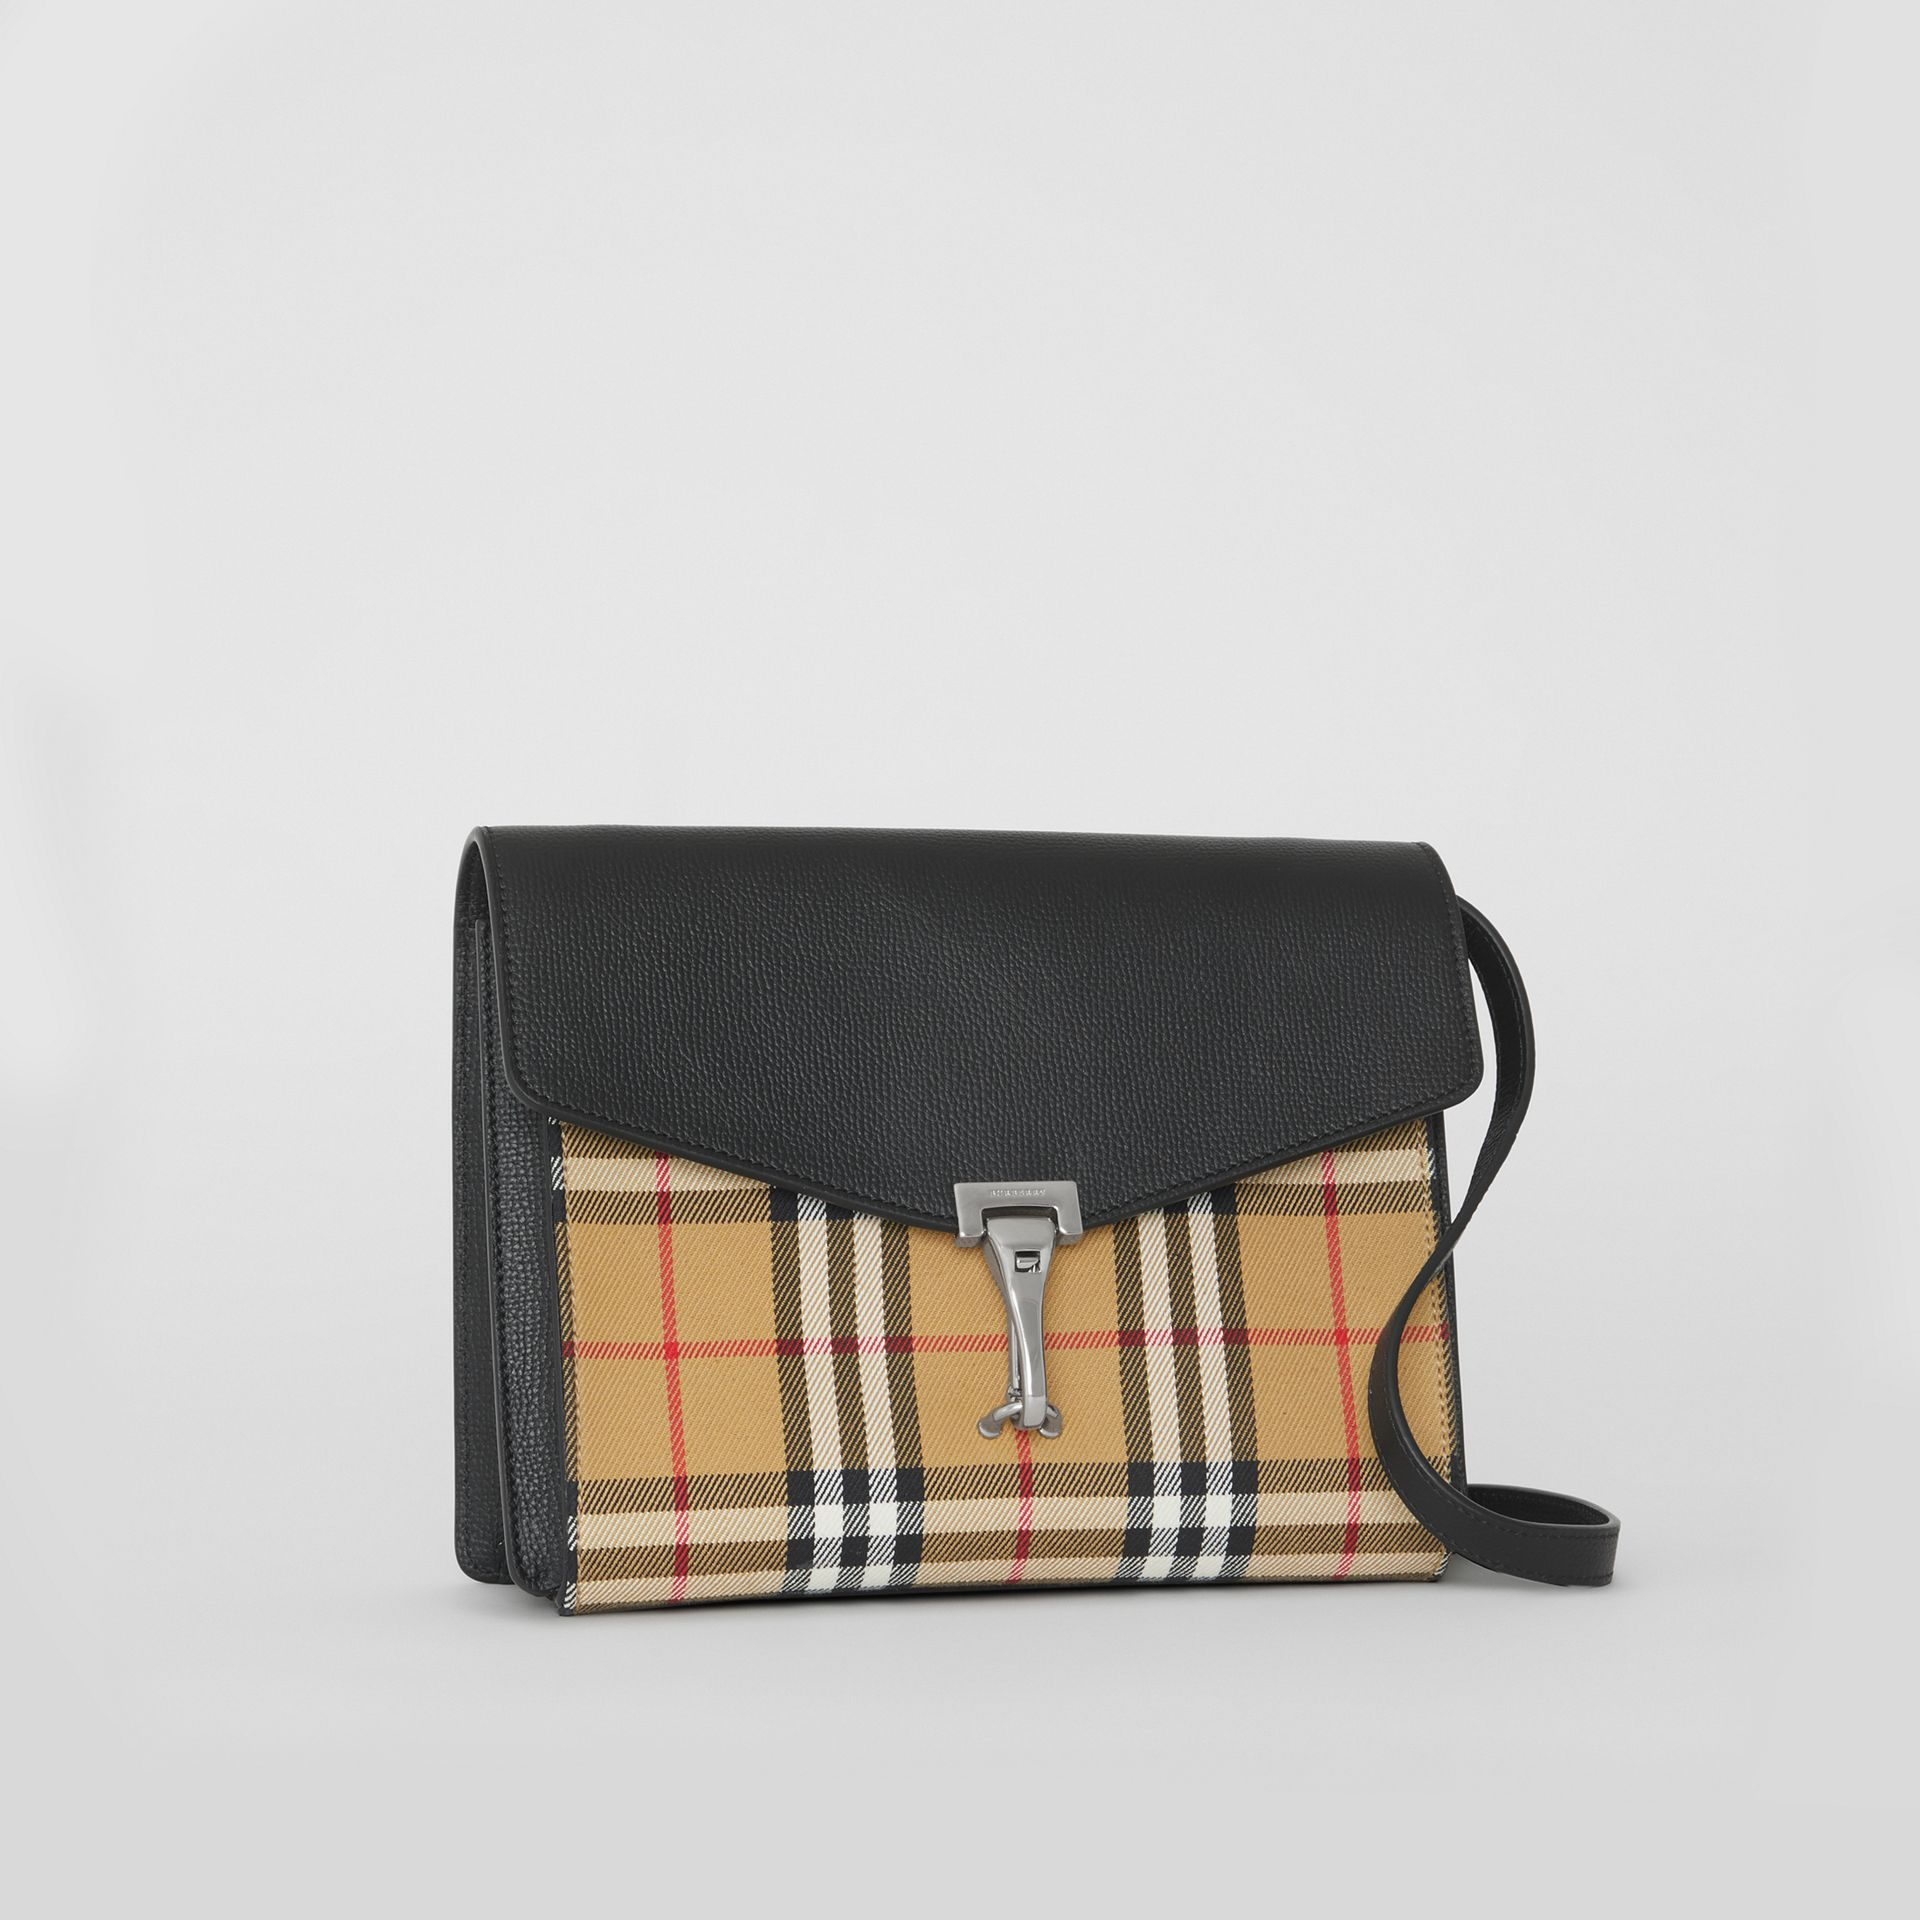 Small Vintage Check and Leather Crossbody Bag in Black - Women | Burberry Singapore - gallery image 6